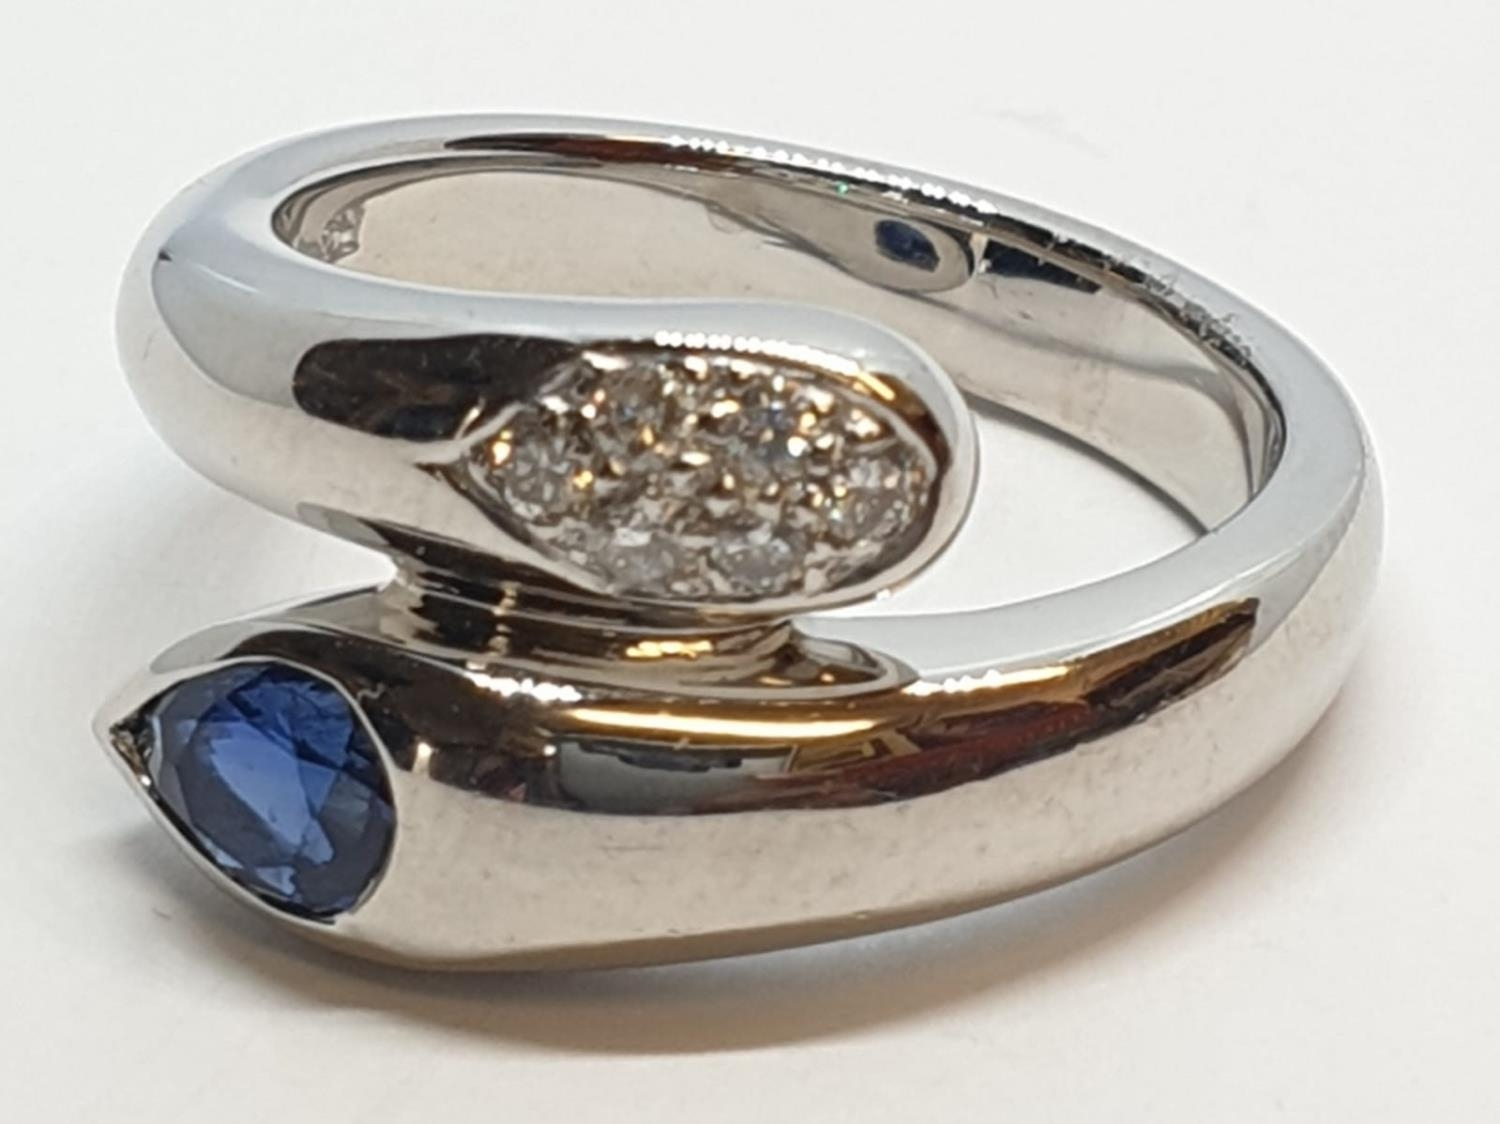 Platinum cross over ring with 0.60ct Thai sapphire and 0.30ct encrusted diamonds, weight 13.7g and - Image 2 of 10